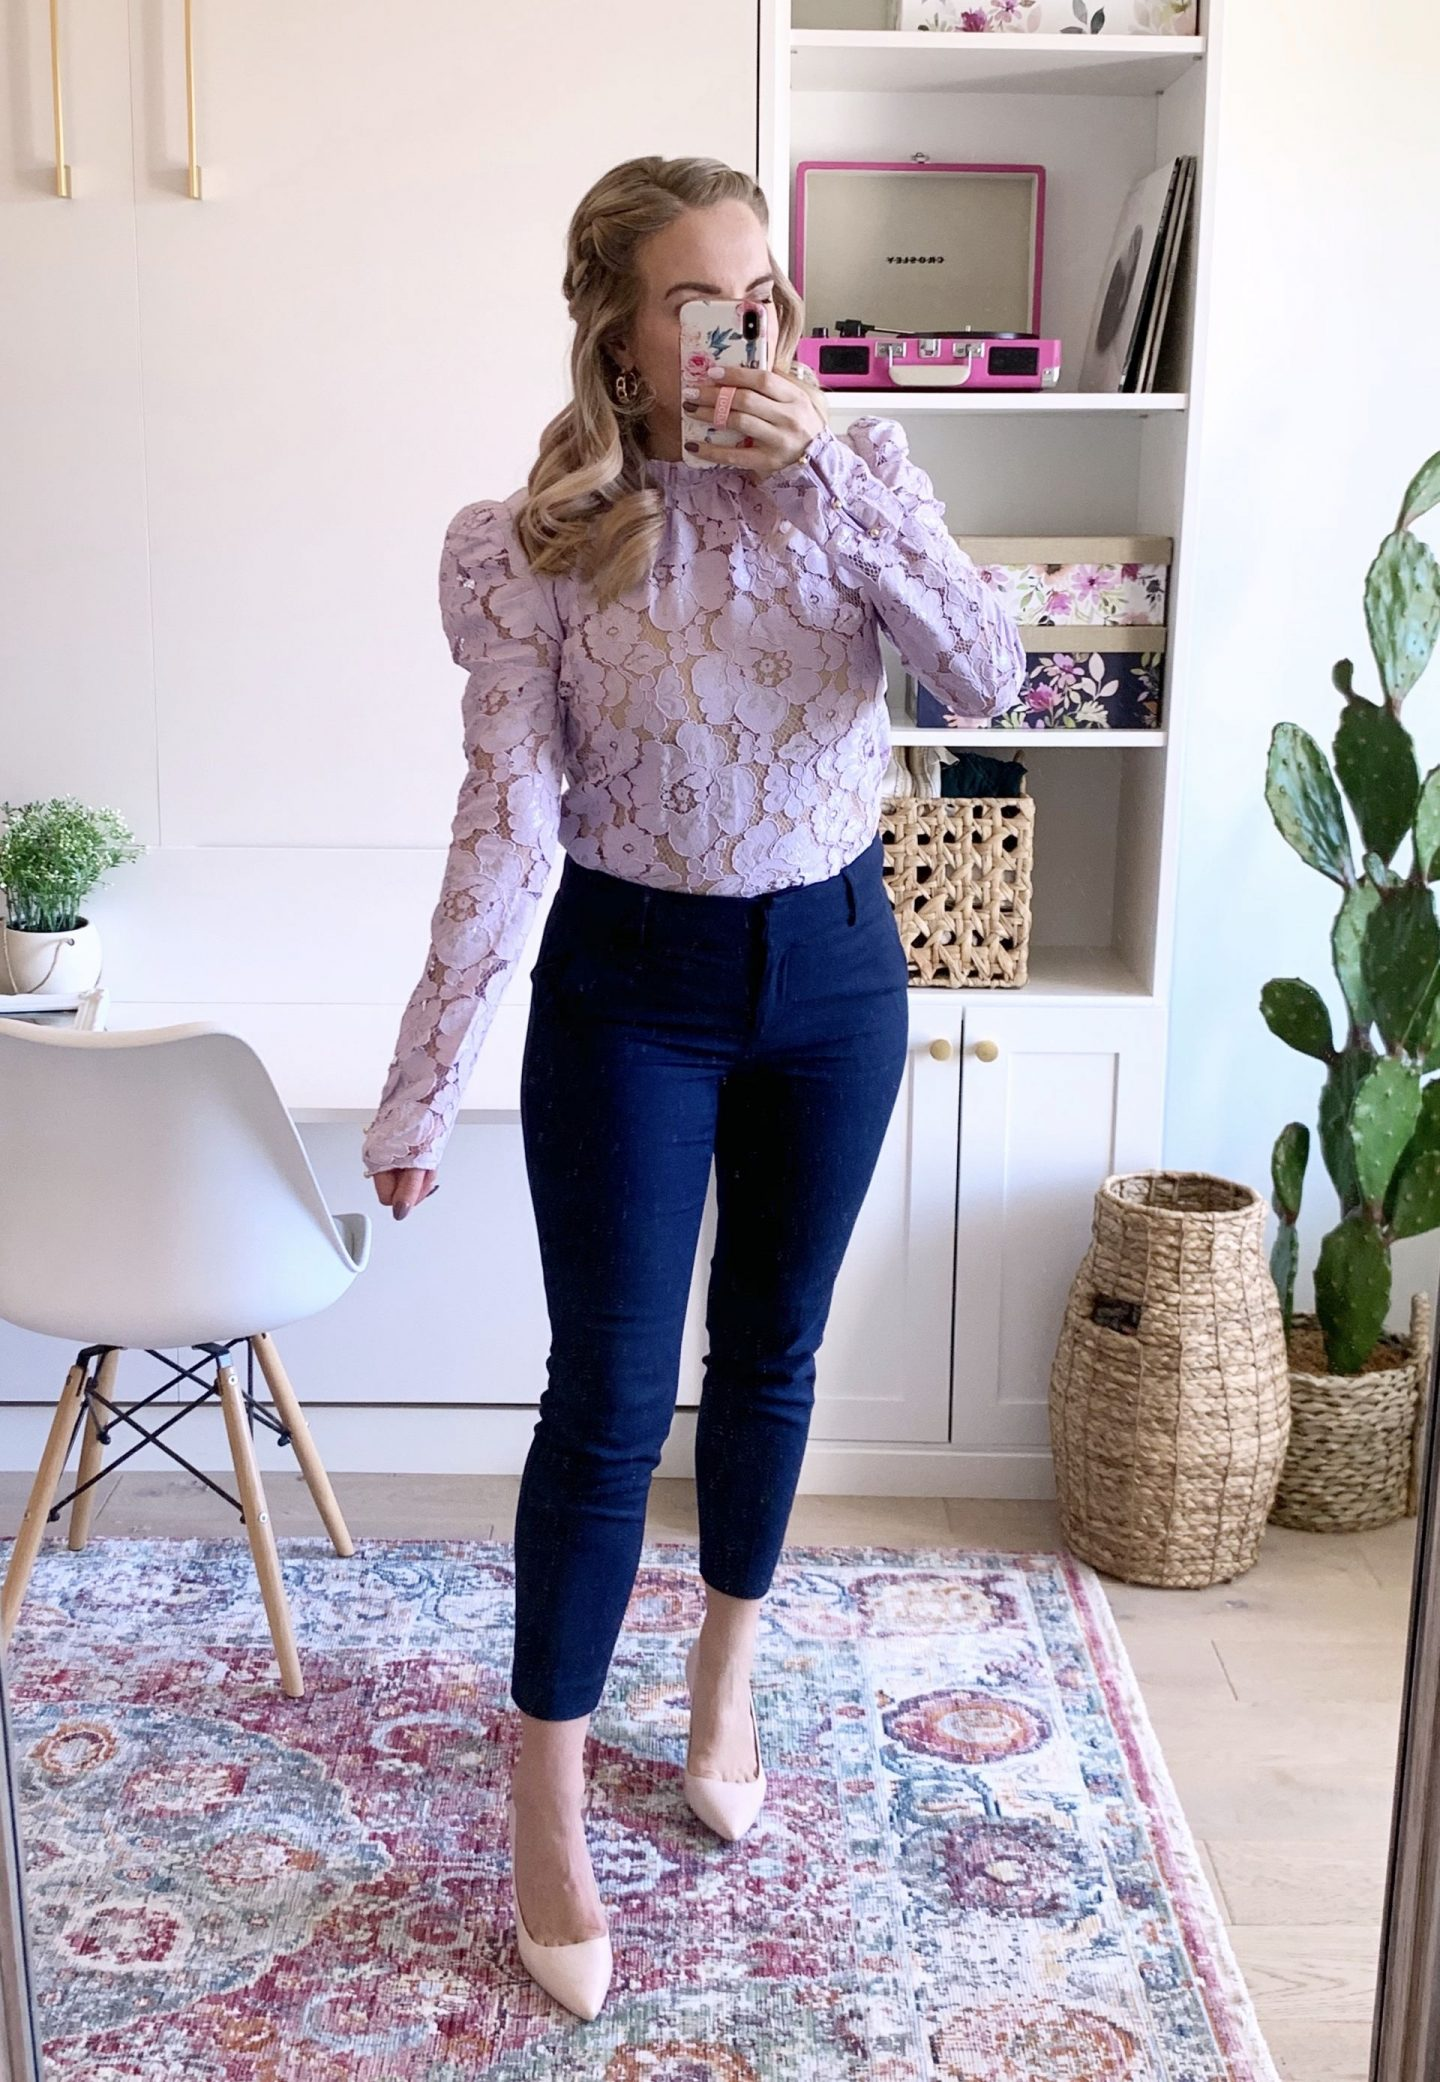 work from home outfit ideas woman in mirror selfie of outfit